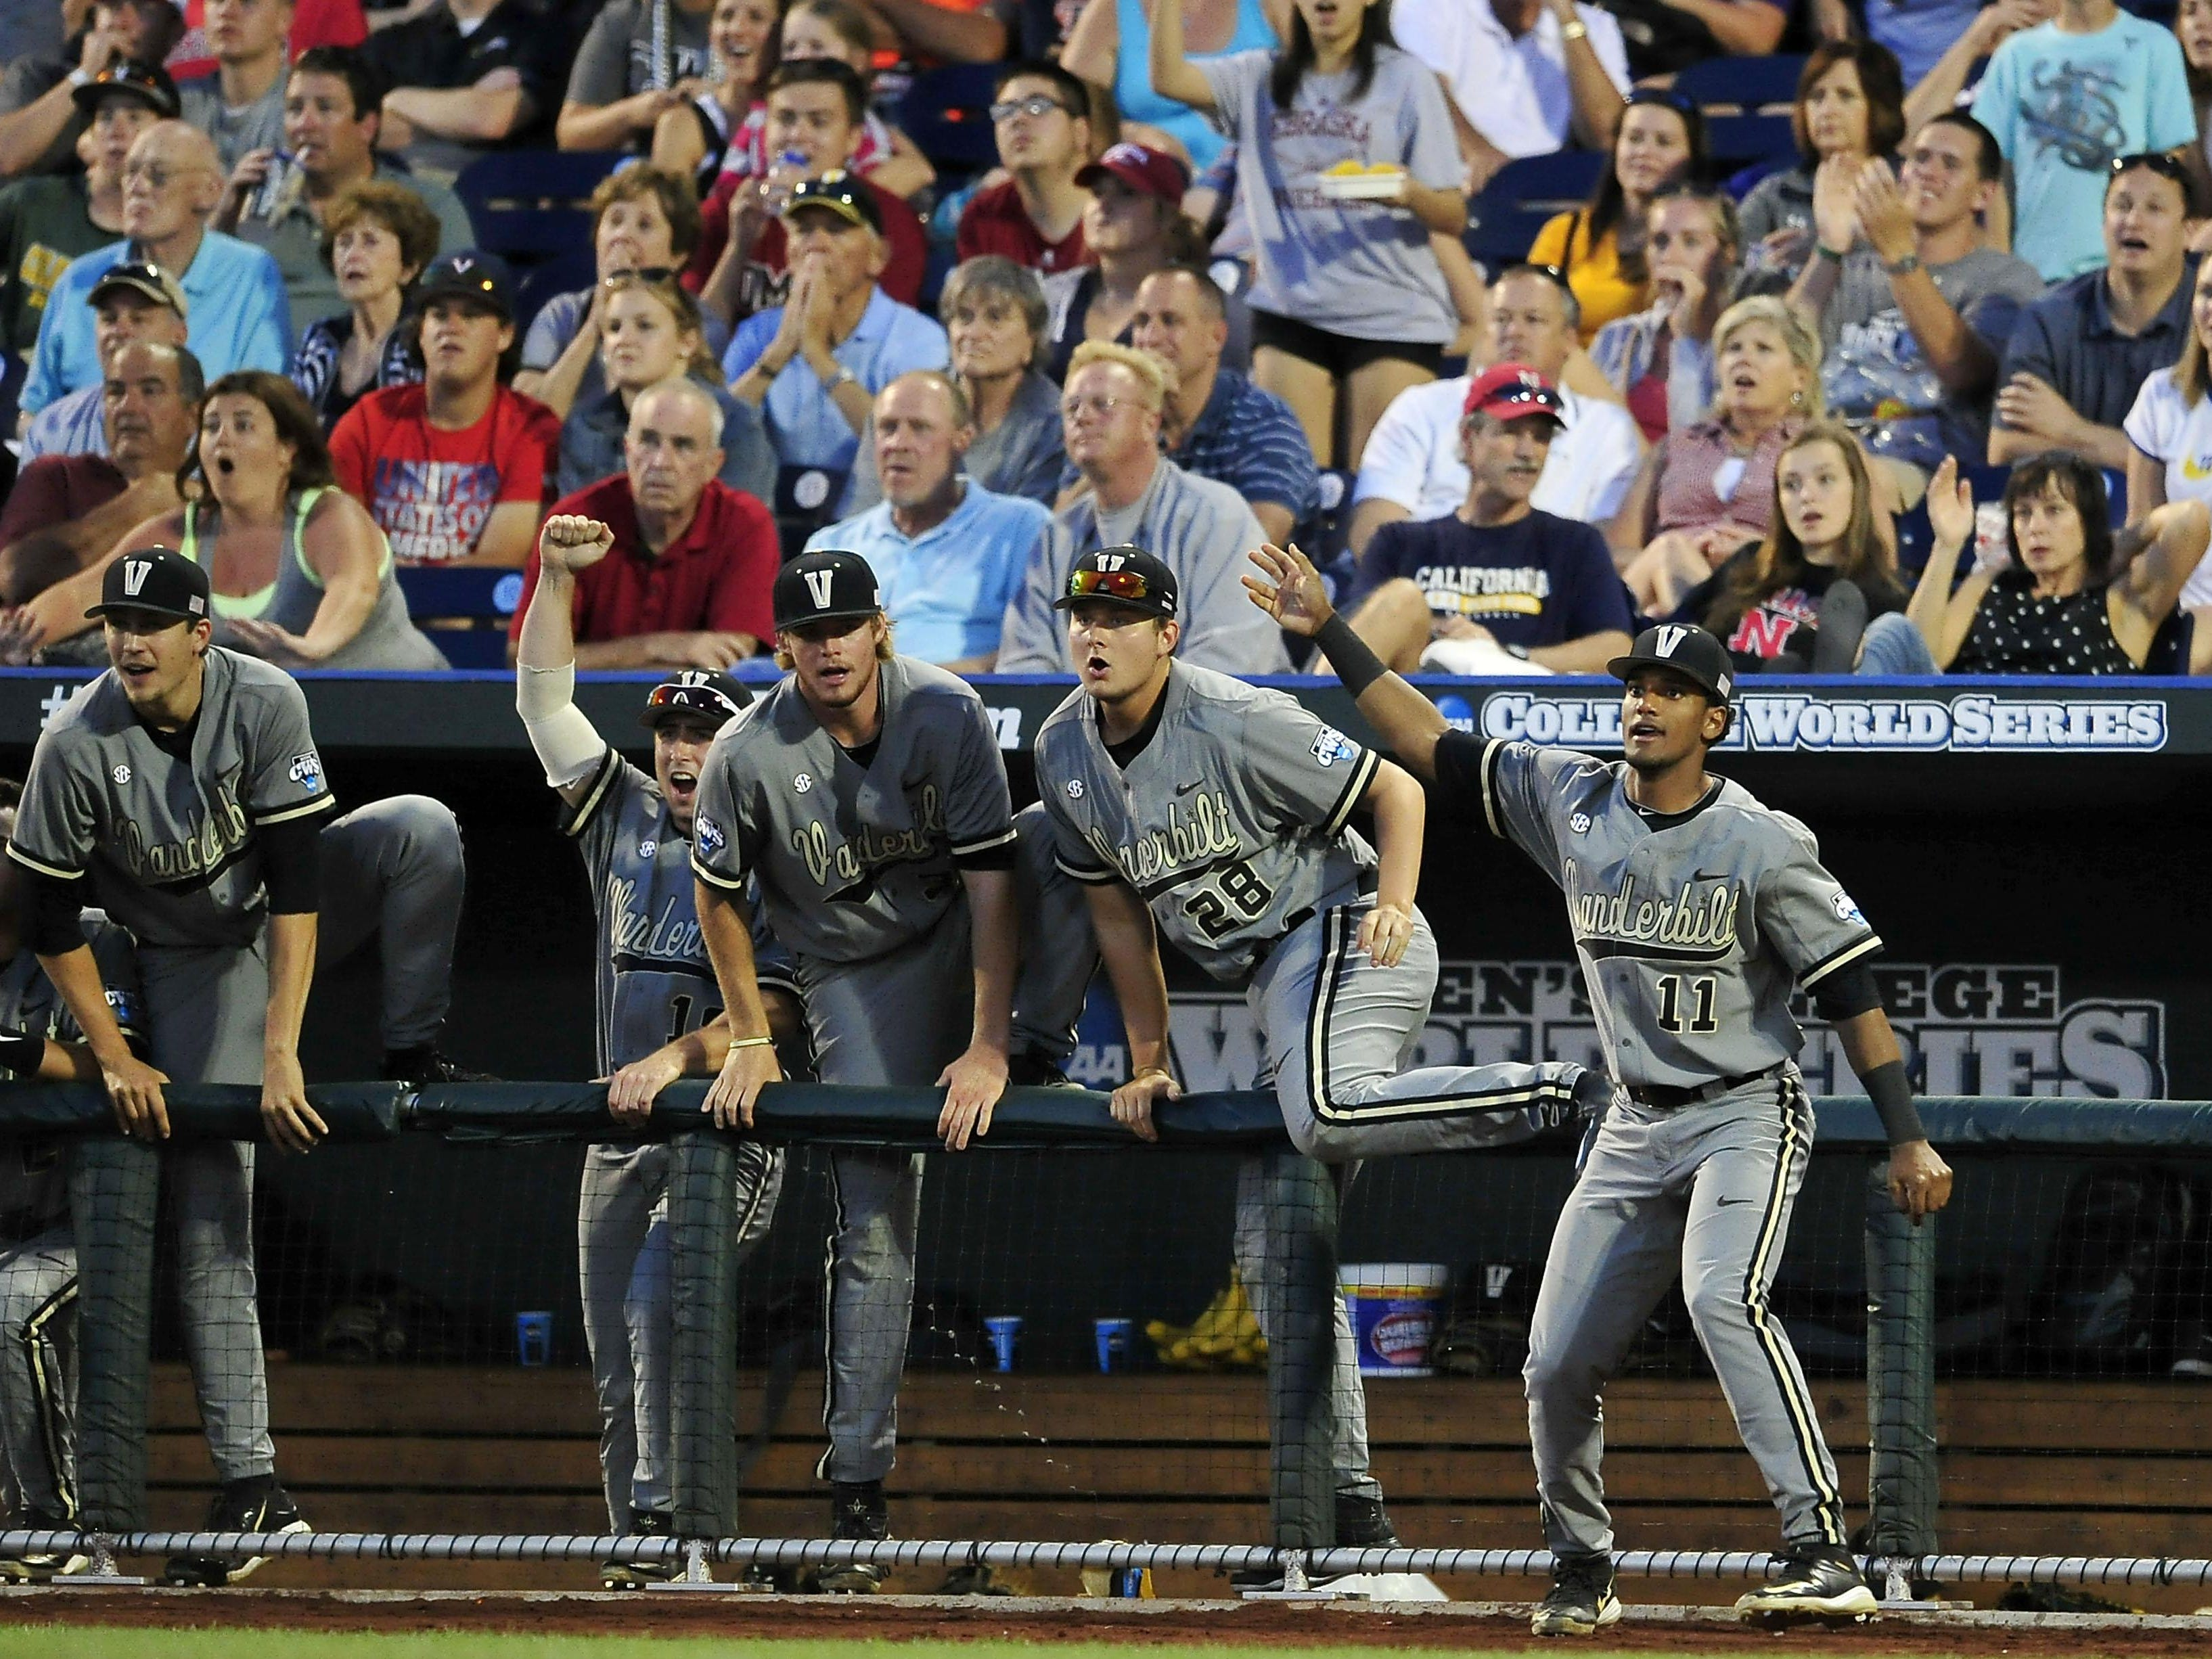 Vanderbilt players including Liam Sabino (11) and Matt Ruppenthal (28) react to Zander Wiel's solo home run against TCU during the seventh inning of the College World Series at TD Ameritrade Park on Tuesday in Omaha, Neb. It was the Commodores' fifth straight one-run win in the College World Series.